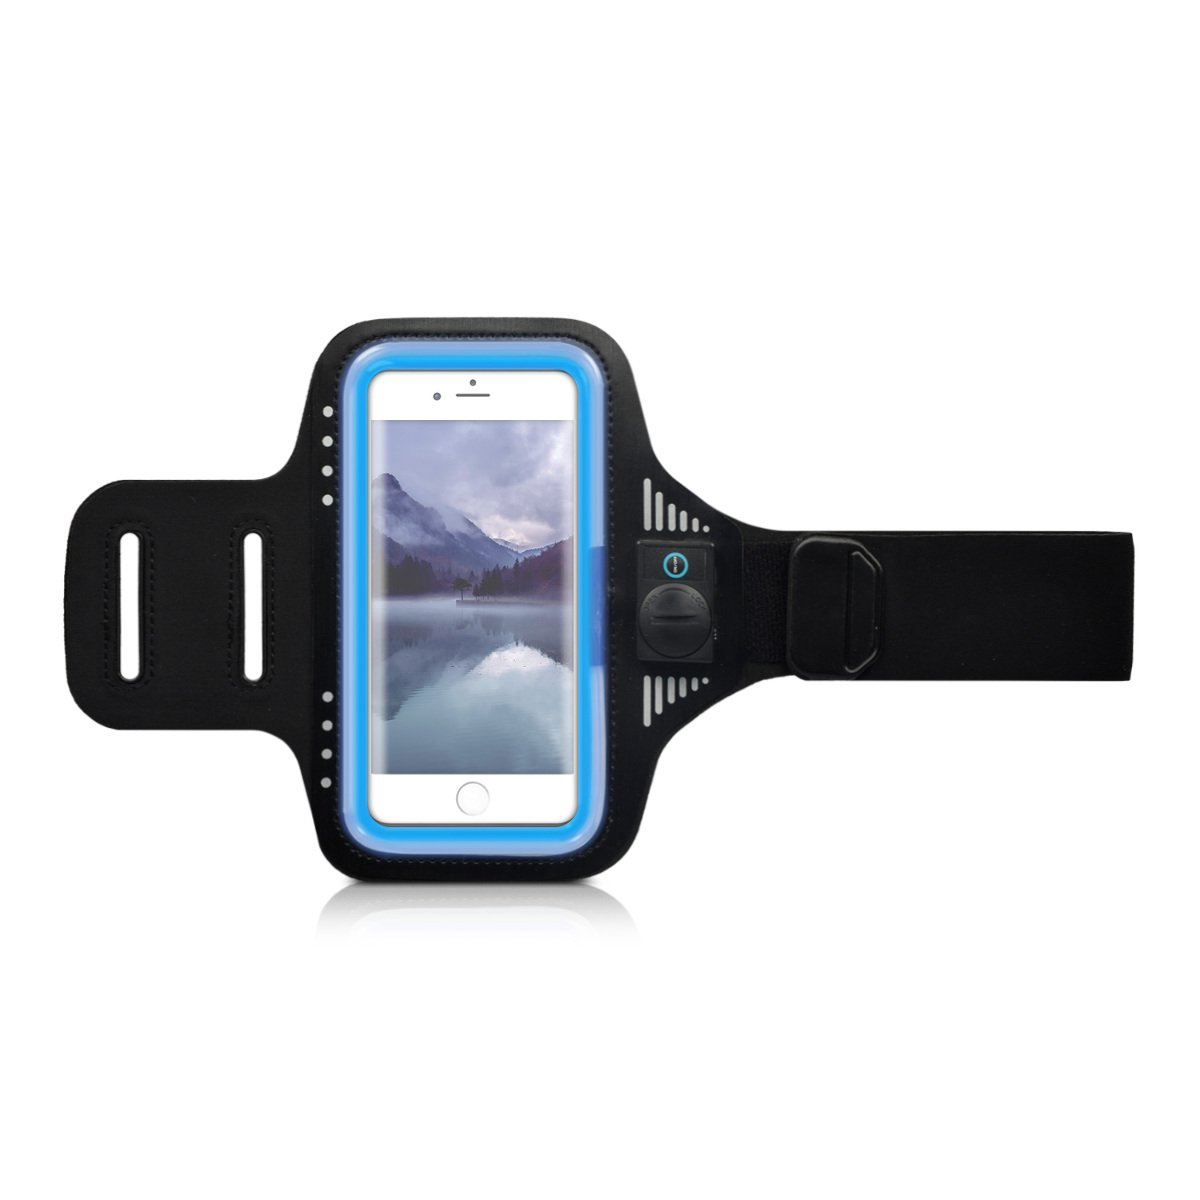 kwmobile Sport Armband für Apple, HTC, Huawei, LG, Motorola, OnePlus, Samsung, Sony, Wiko Smartphones mit LED Licht - Jogging Sportarmband in Blau KW-Commerce 38873.04_m000005